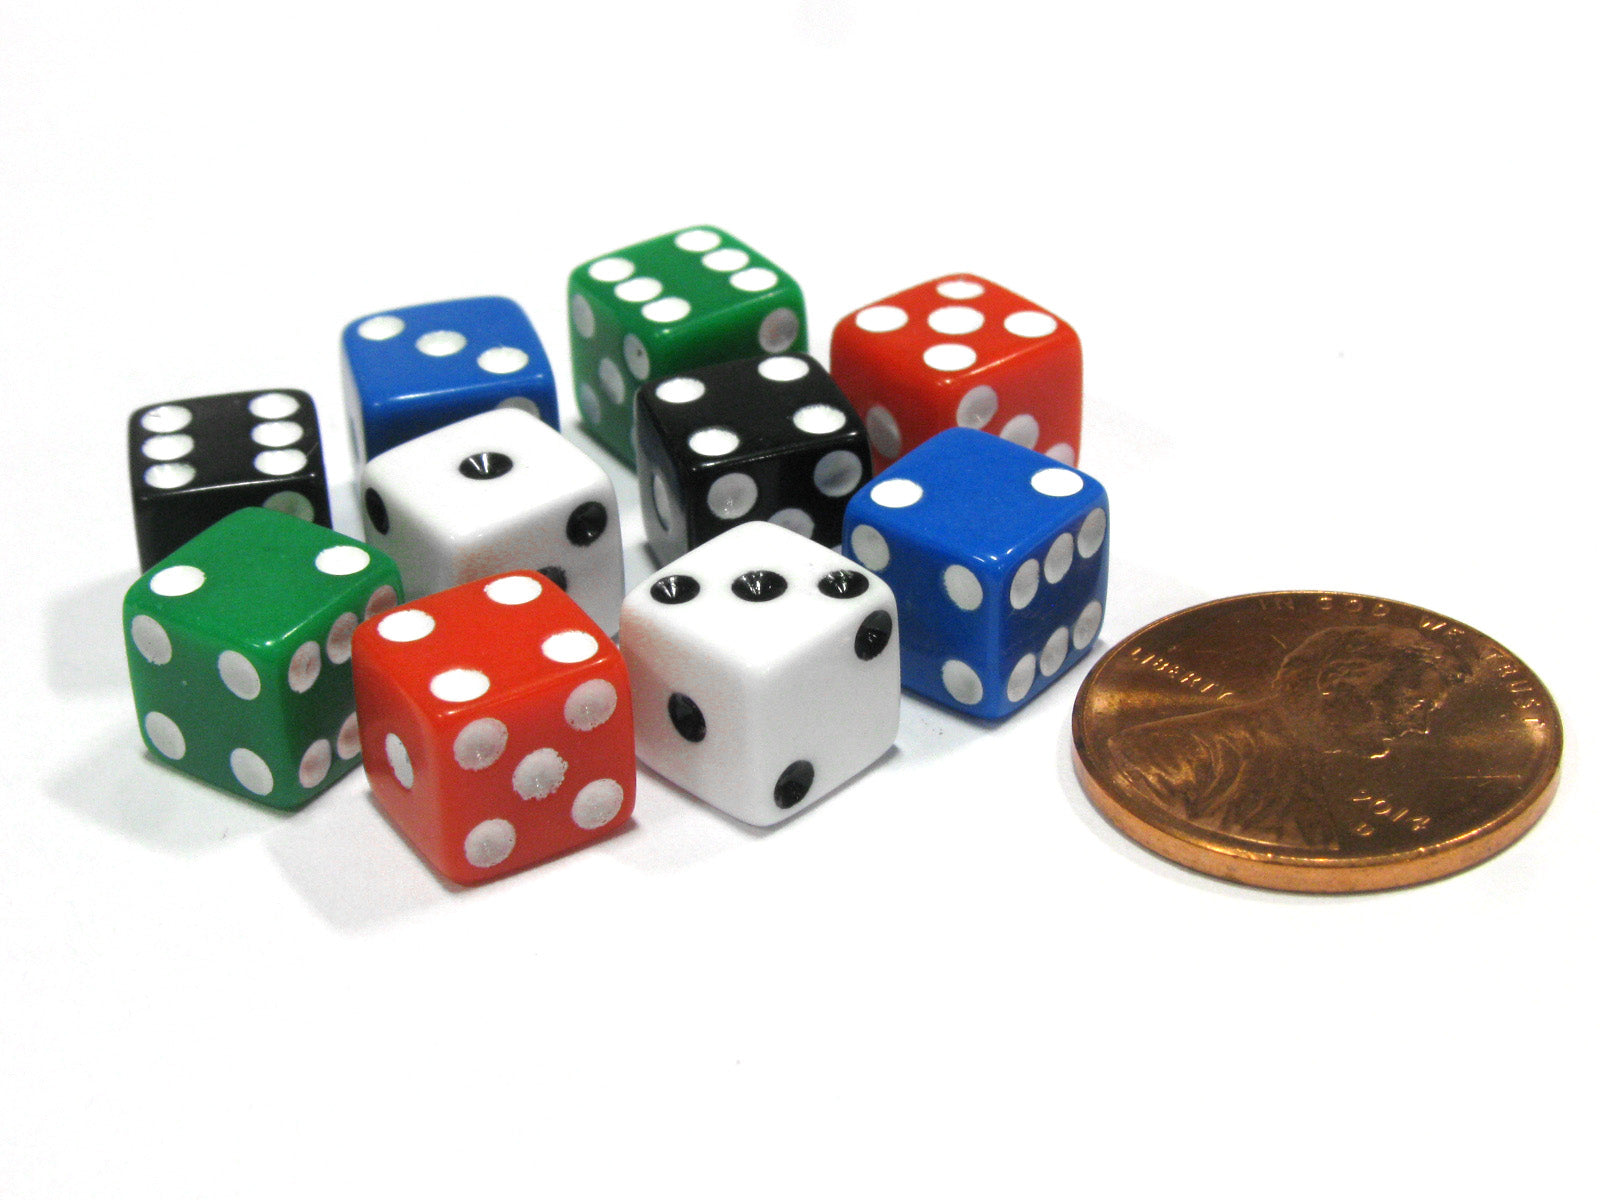 Pack of 10 8mm D6 Small Square-Edge Dice, 2 of Each: Red White Blue Green Black